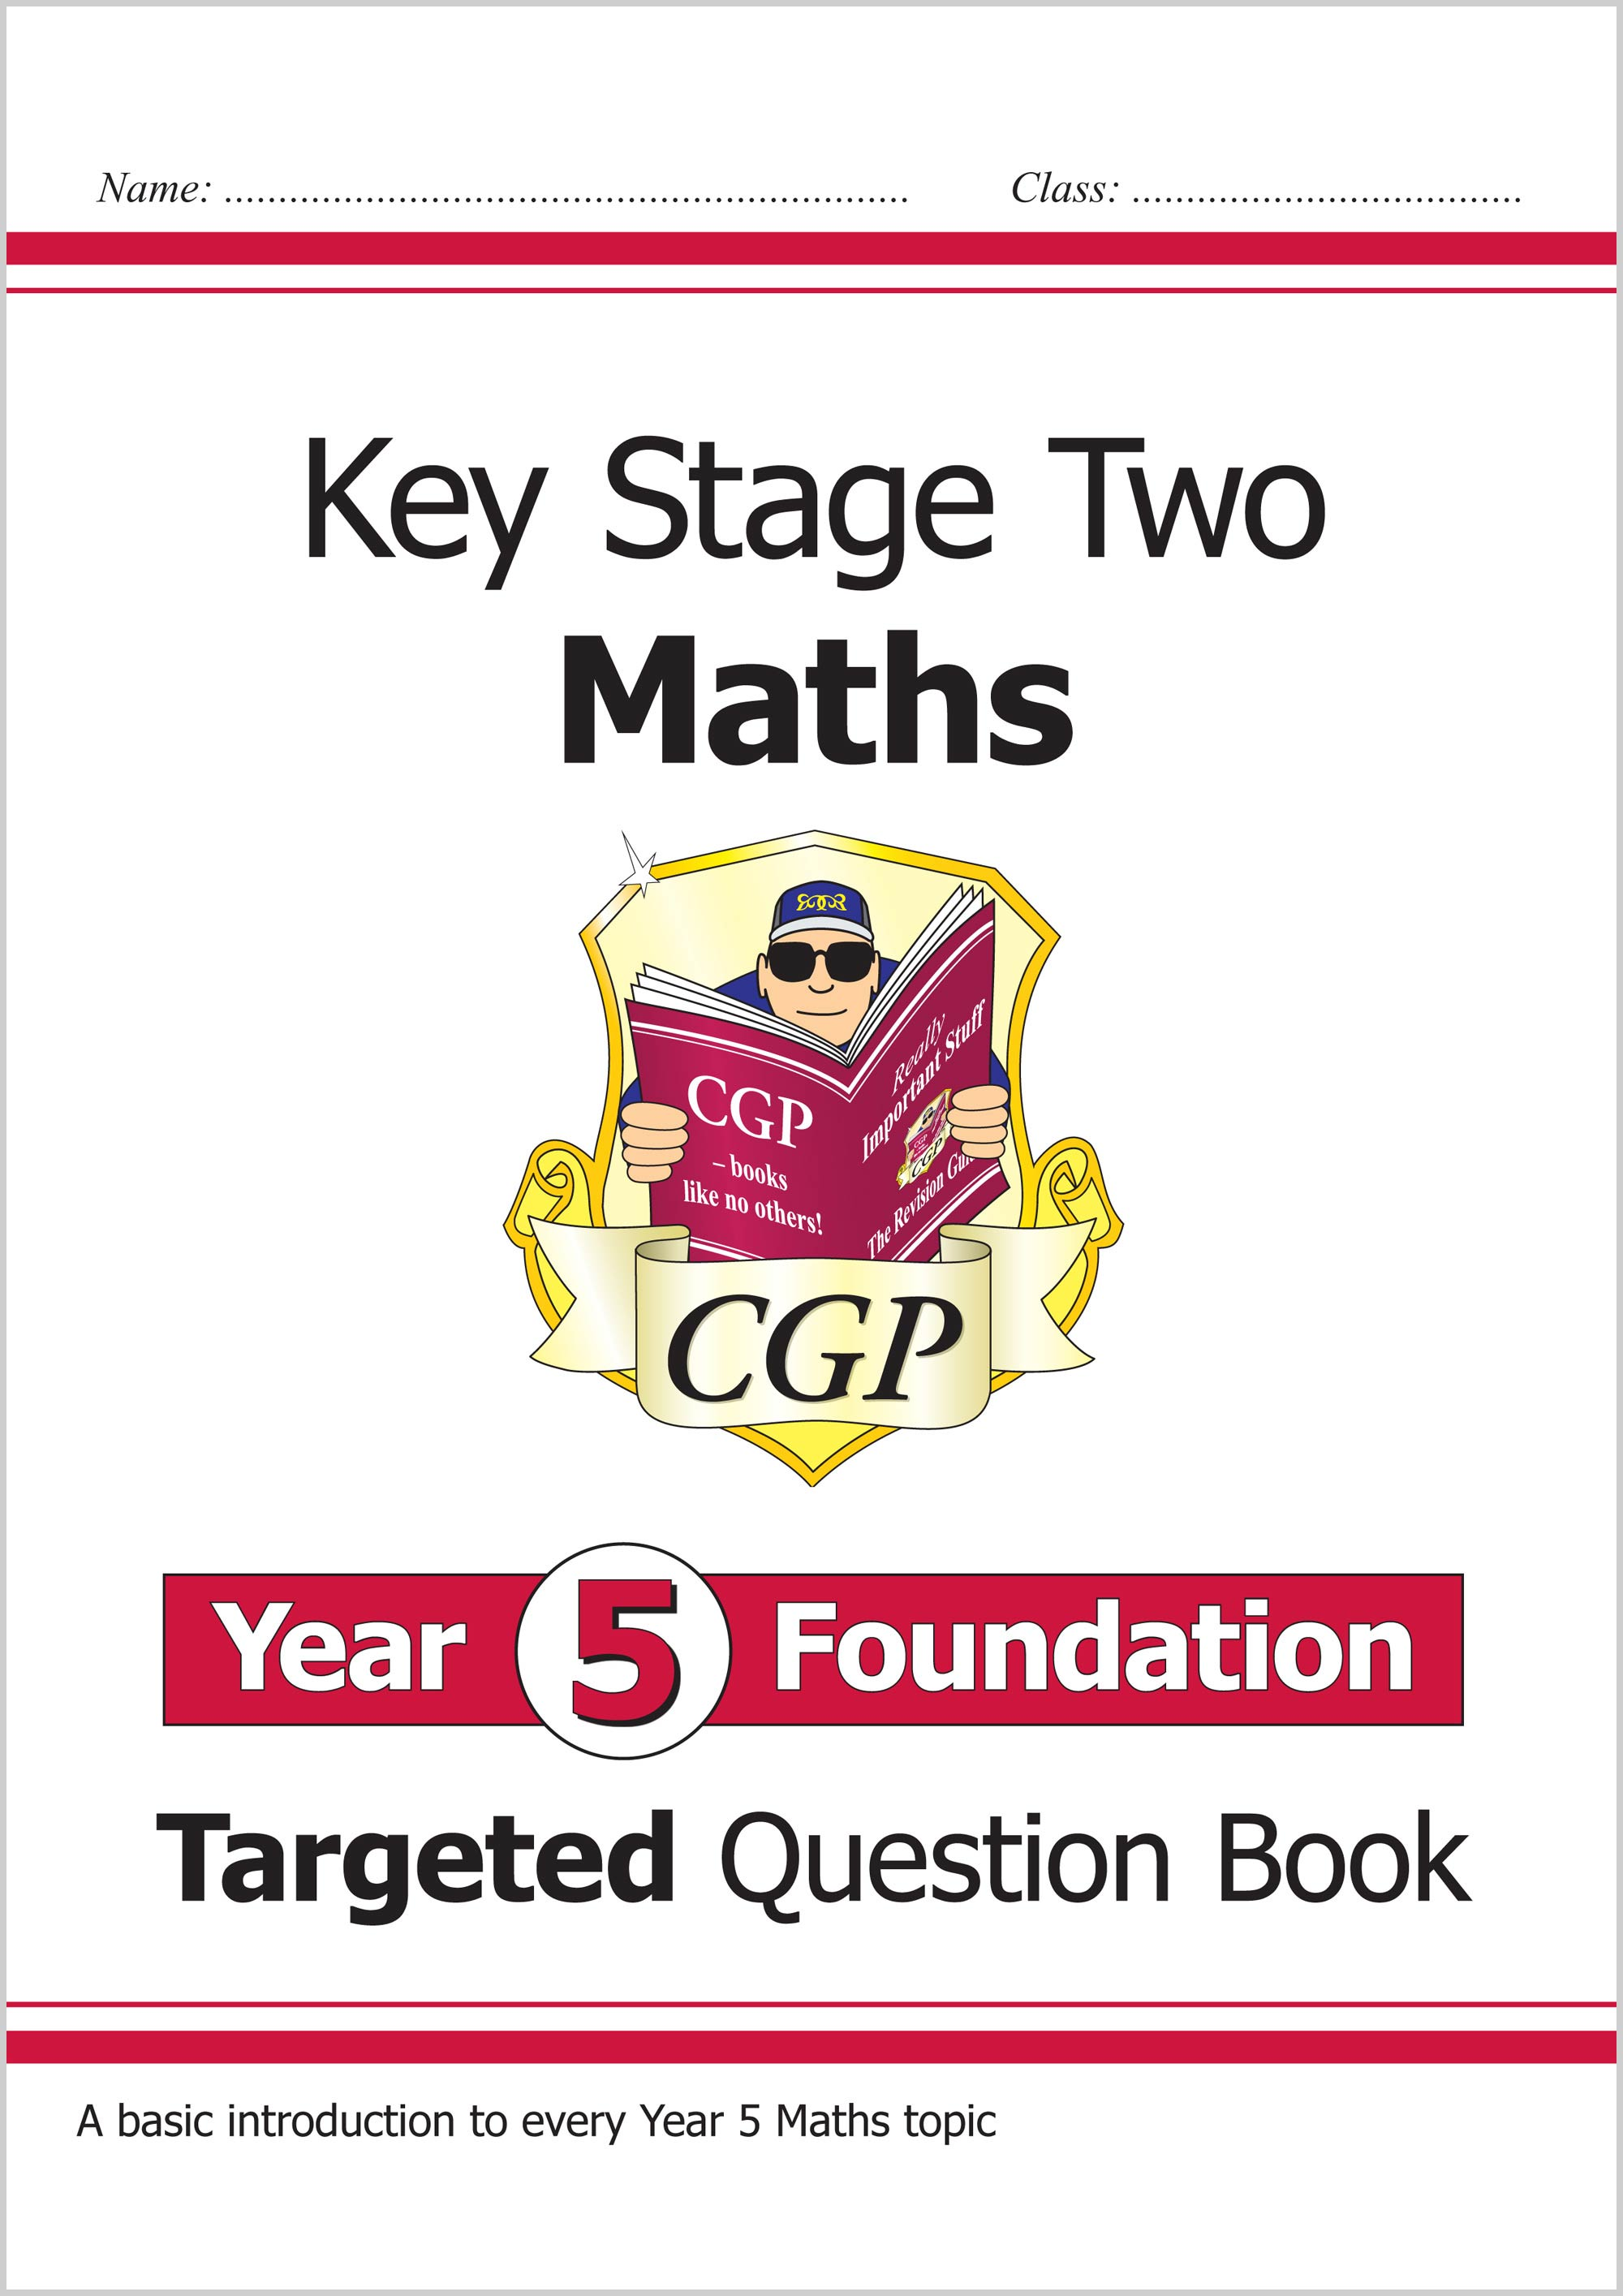 M5FQ21 - New KS2 Maths Targeted Question Book: Year 5 Foundation